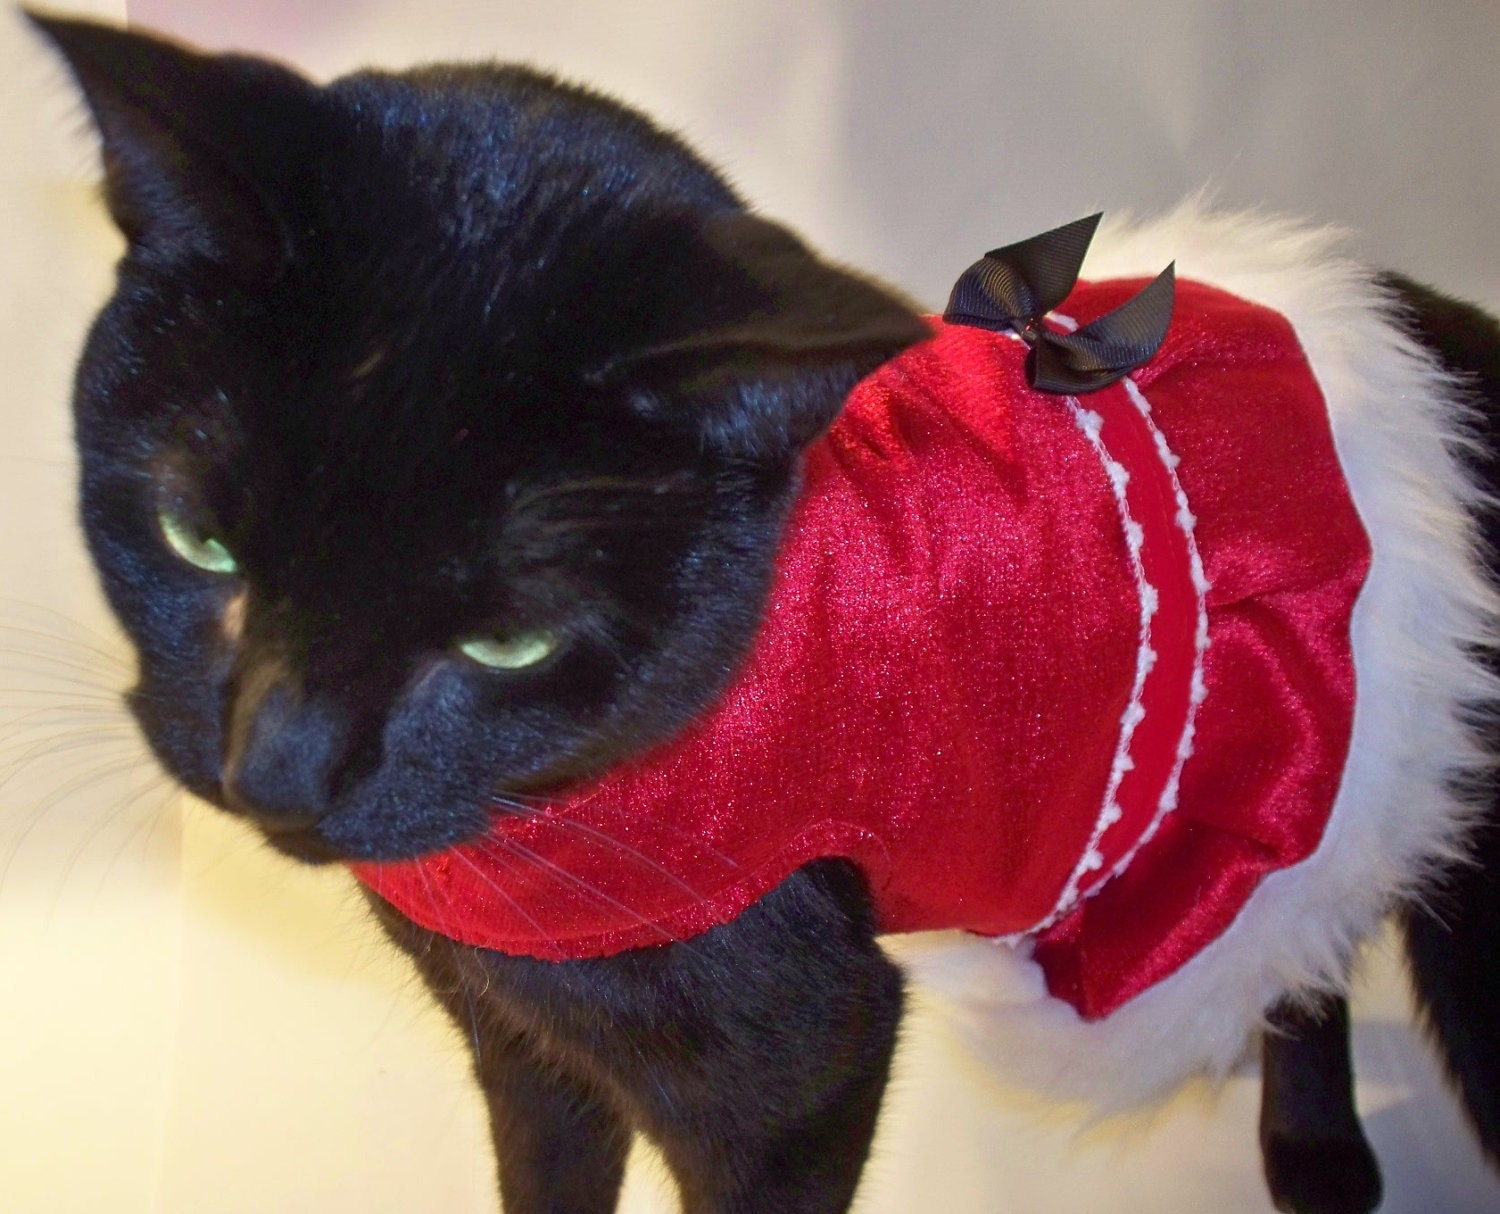 red velvet and fur christmas cat costume & Christmas Cat Costumes Now Featured in Gift Guide! - Mousebreath ...